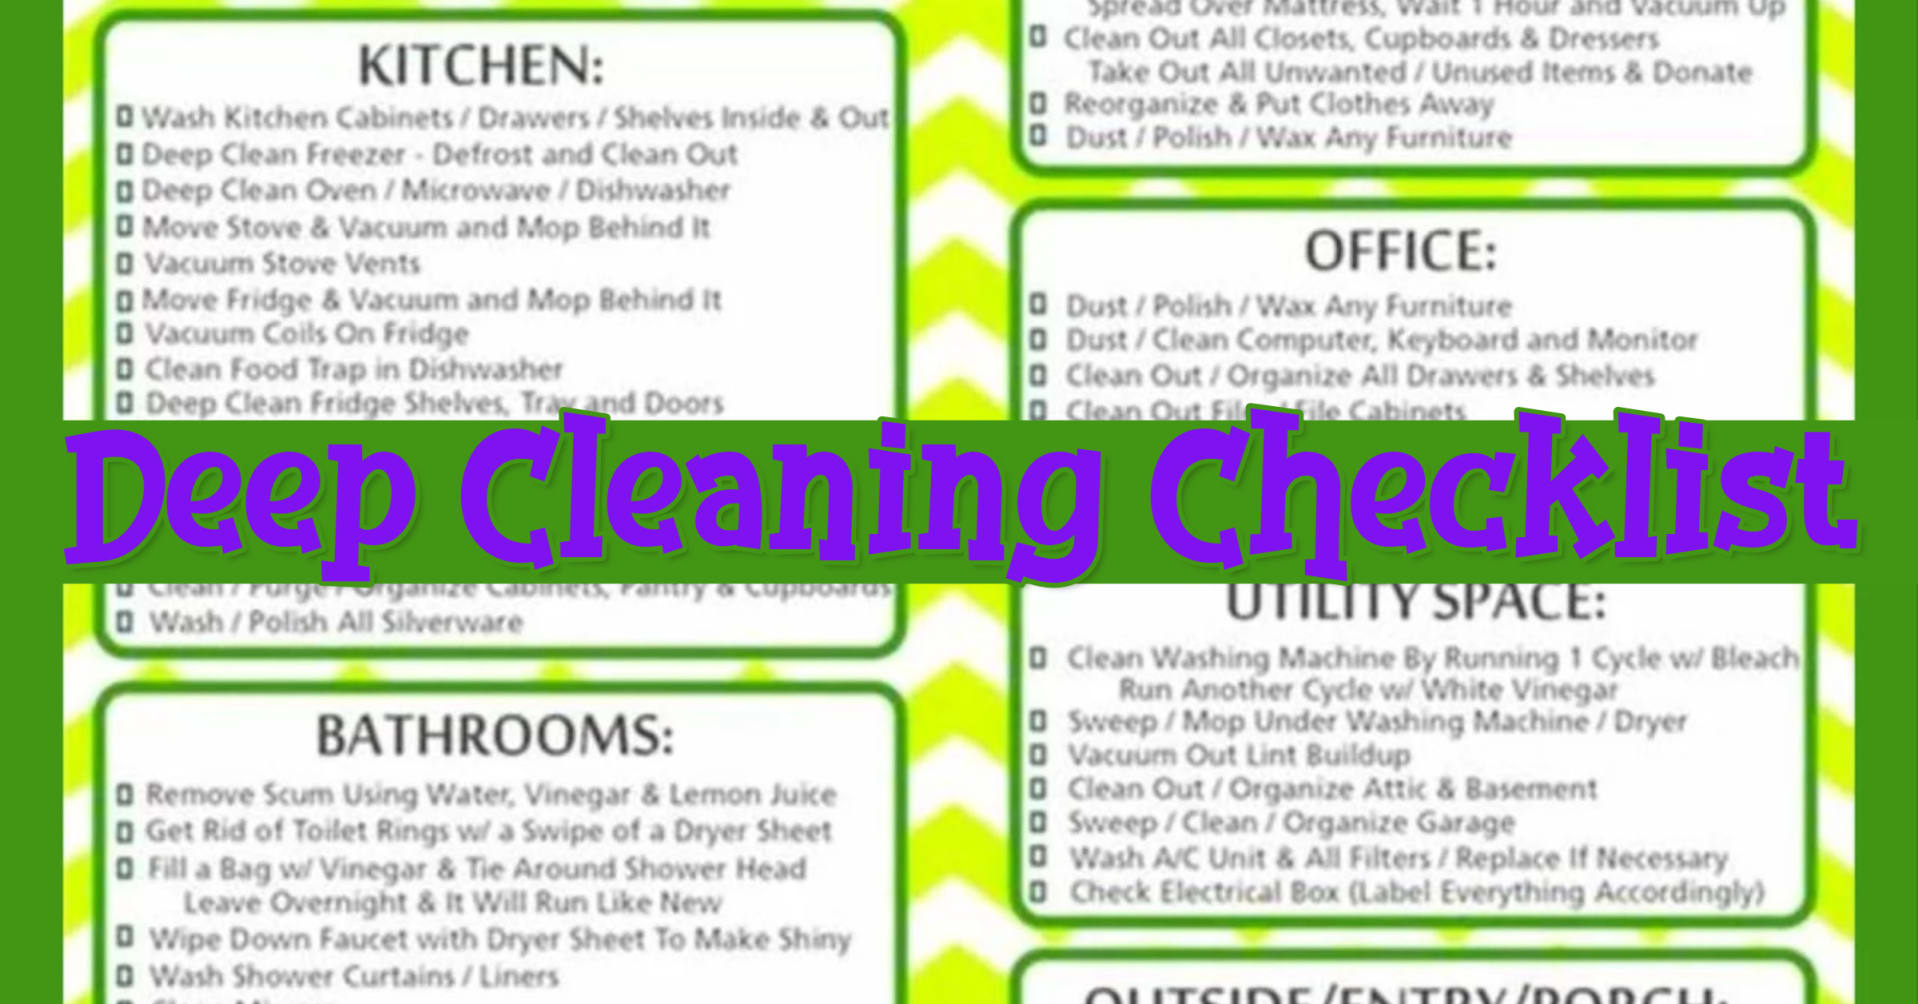 Deep cleaning your house checklist and list of chores to deep clean your home